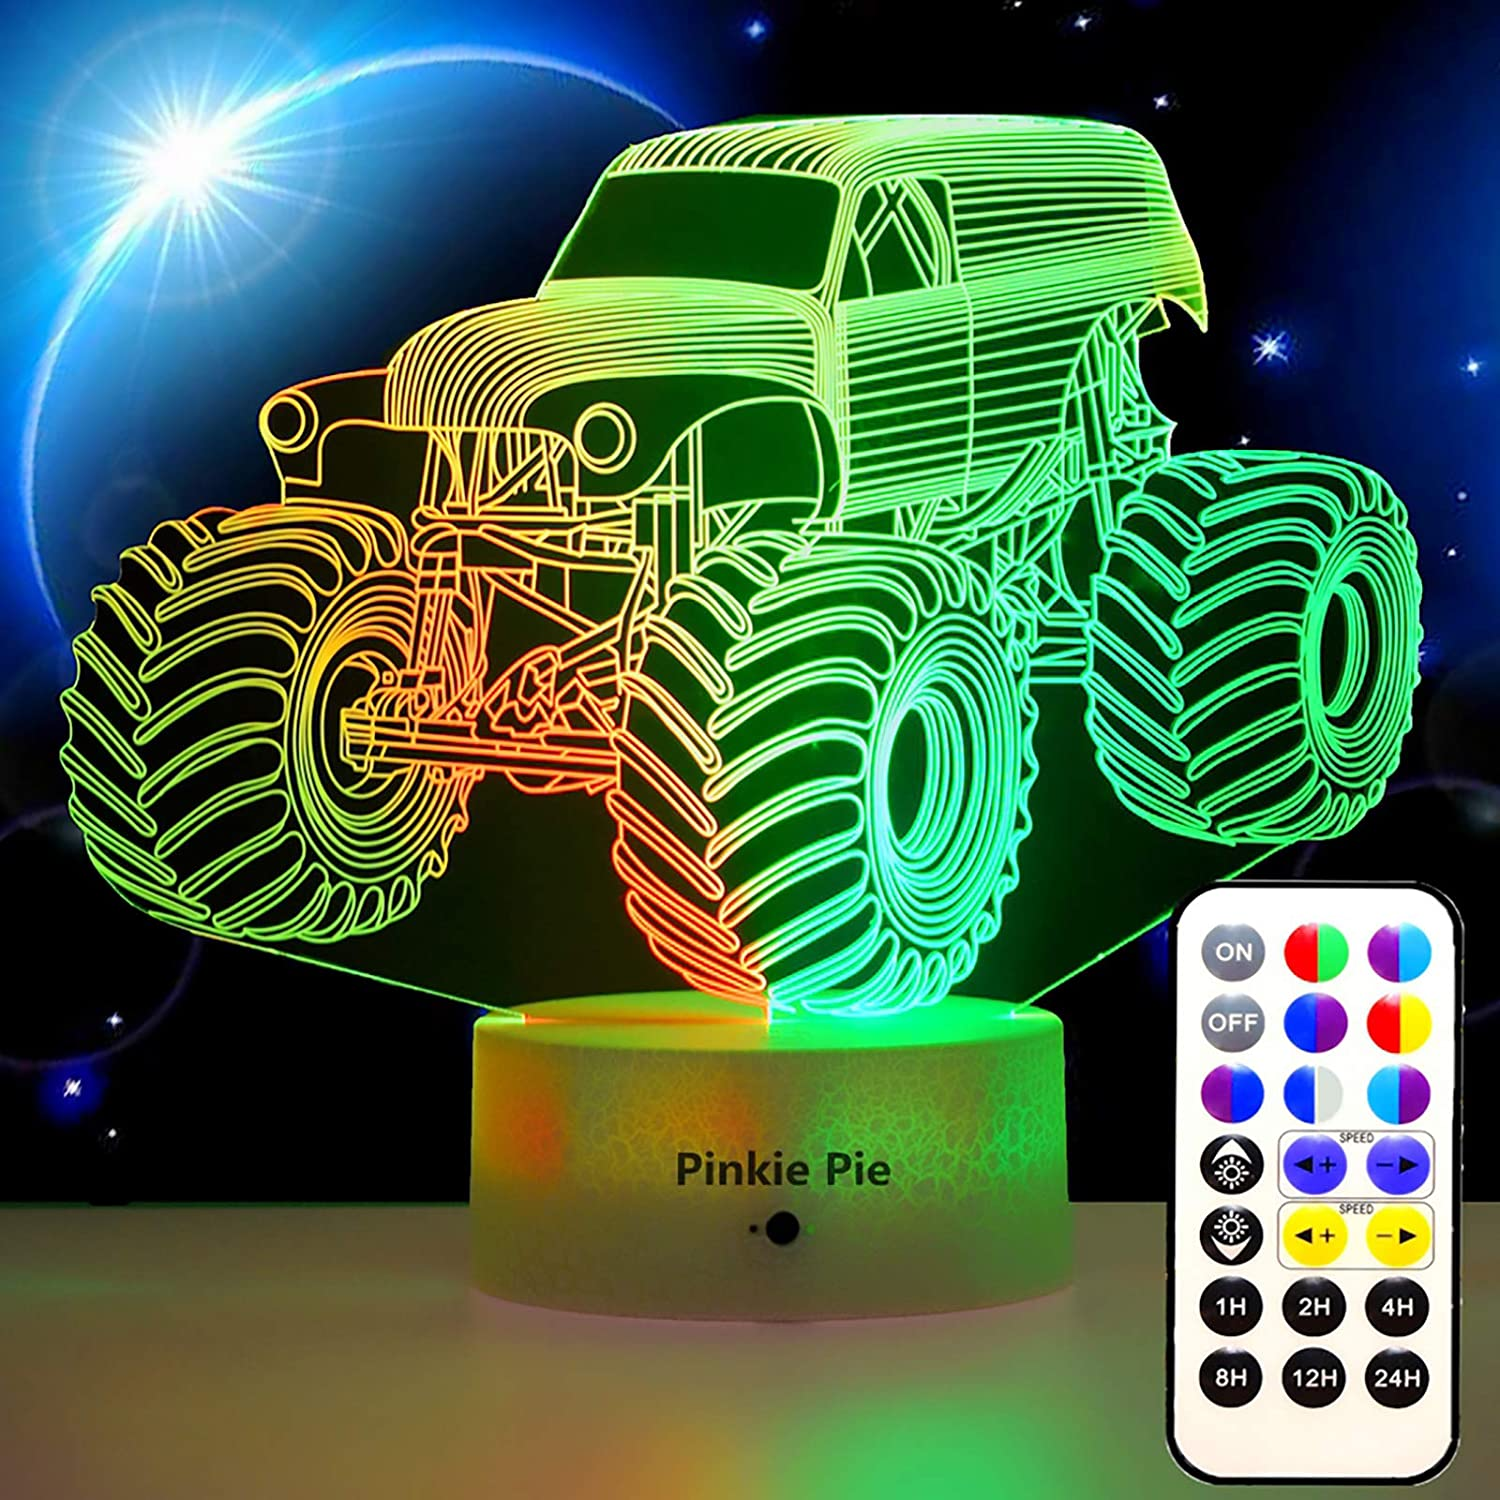 Pinkie Pie Night Light for Kids, Night Lamp Bedroom Soft Lights Lamp with Remote Dimmable 3D Lamp, 14 Colors Monster Truck Decor for 3 4 5 9 10+ Year Old Child Birthday, Easter